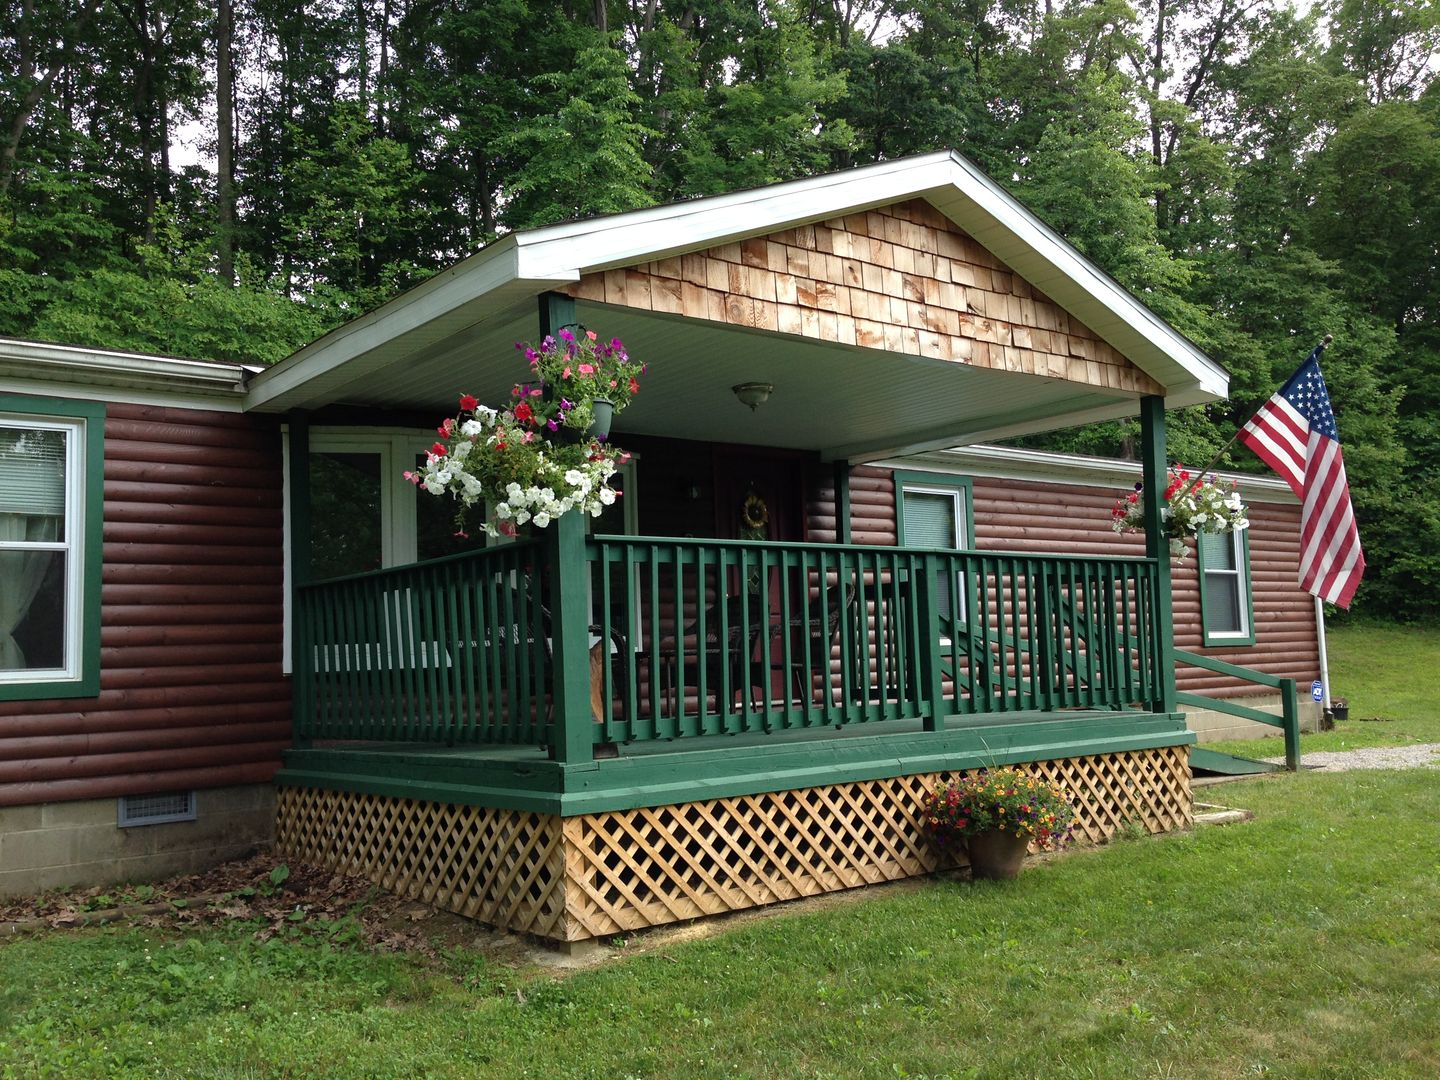 hills ohio cheap getaway and in cabin cabins rentals hocking margaritaville bb cottages